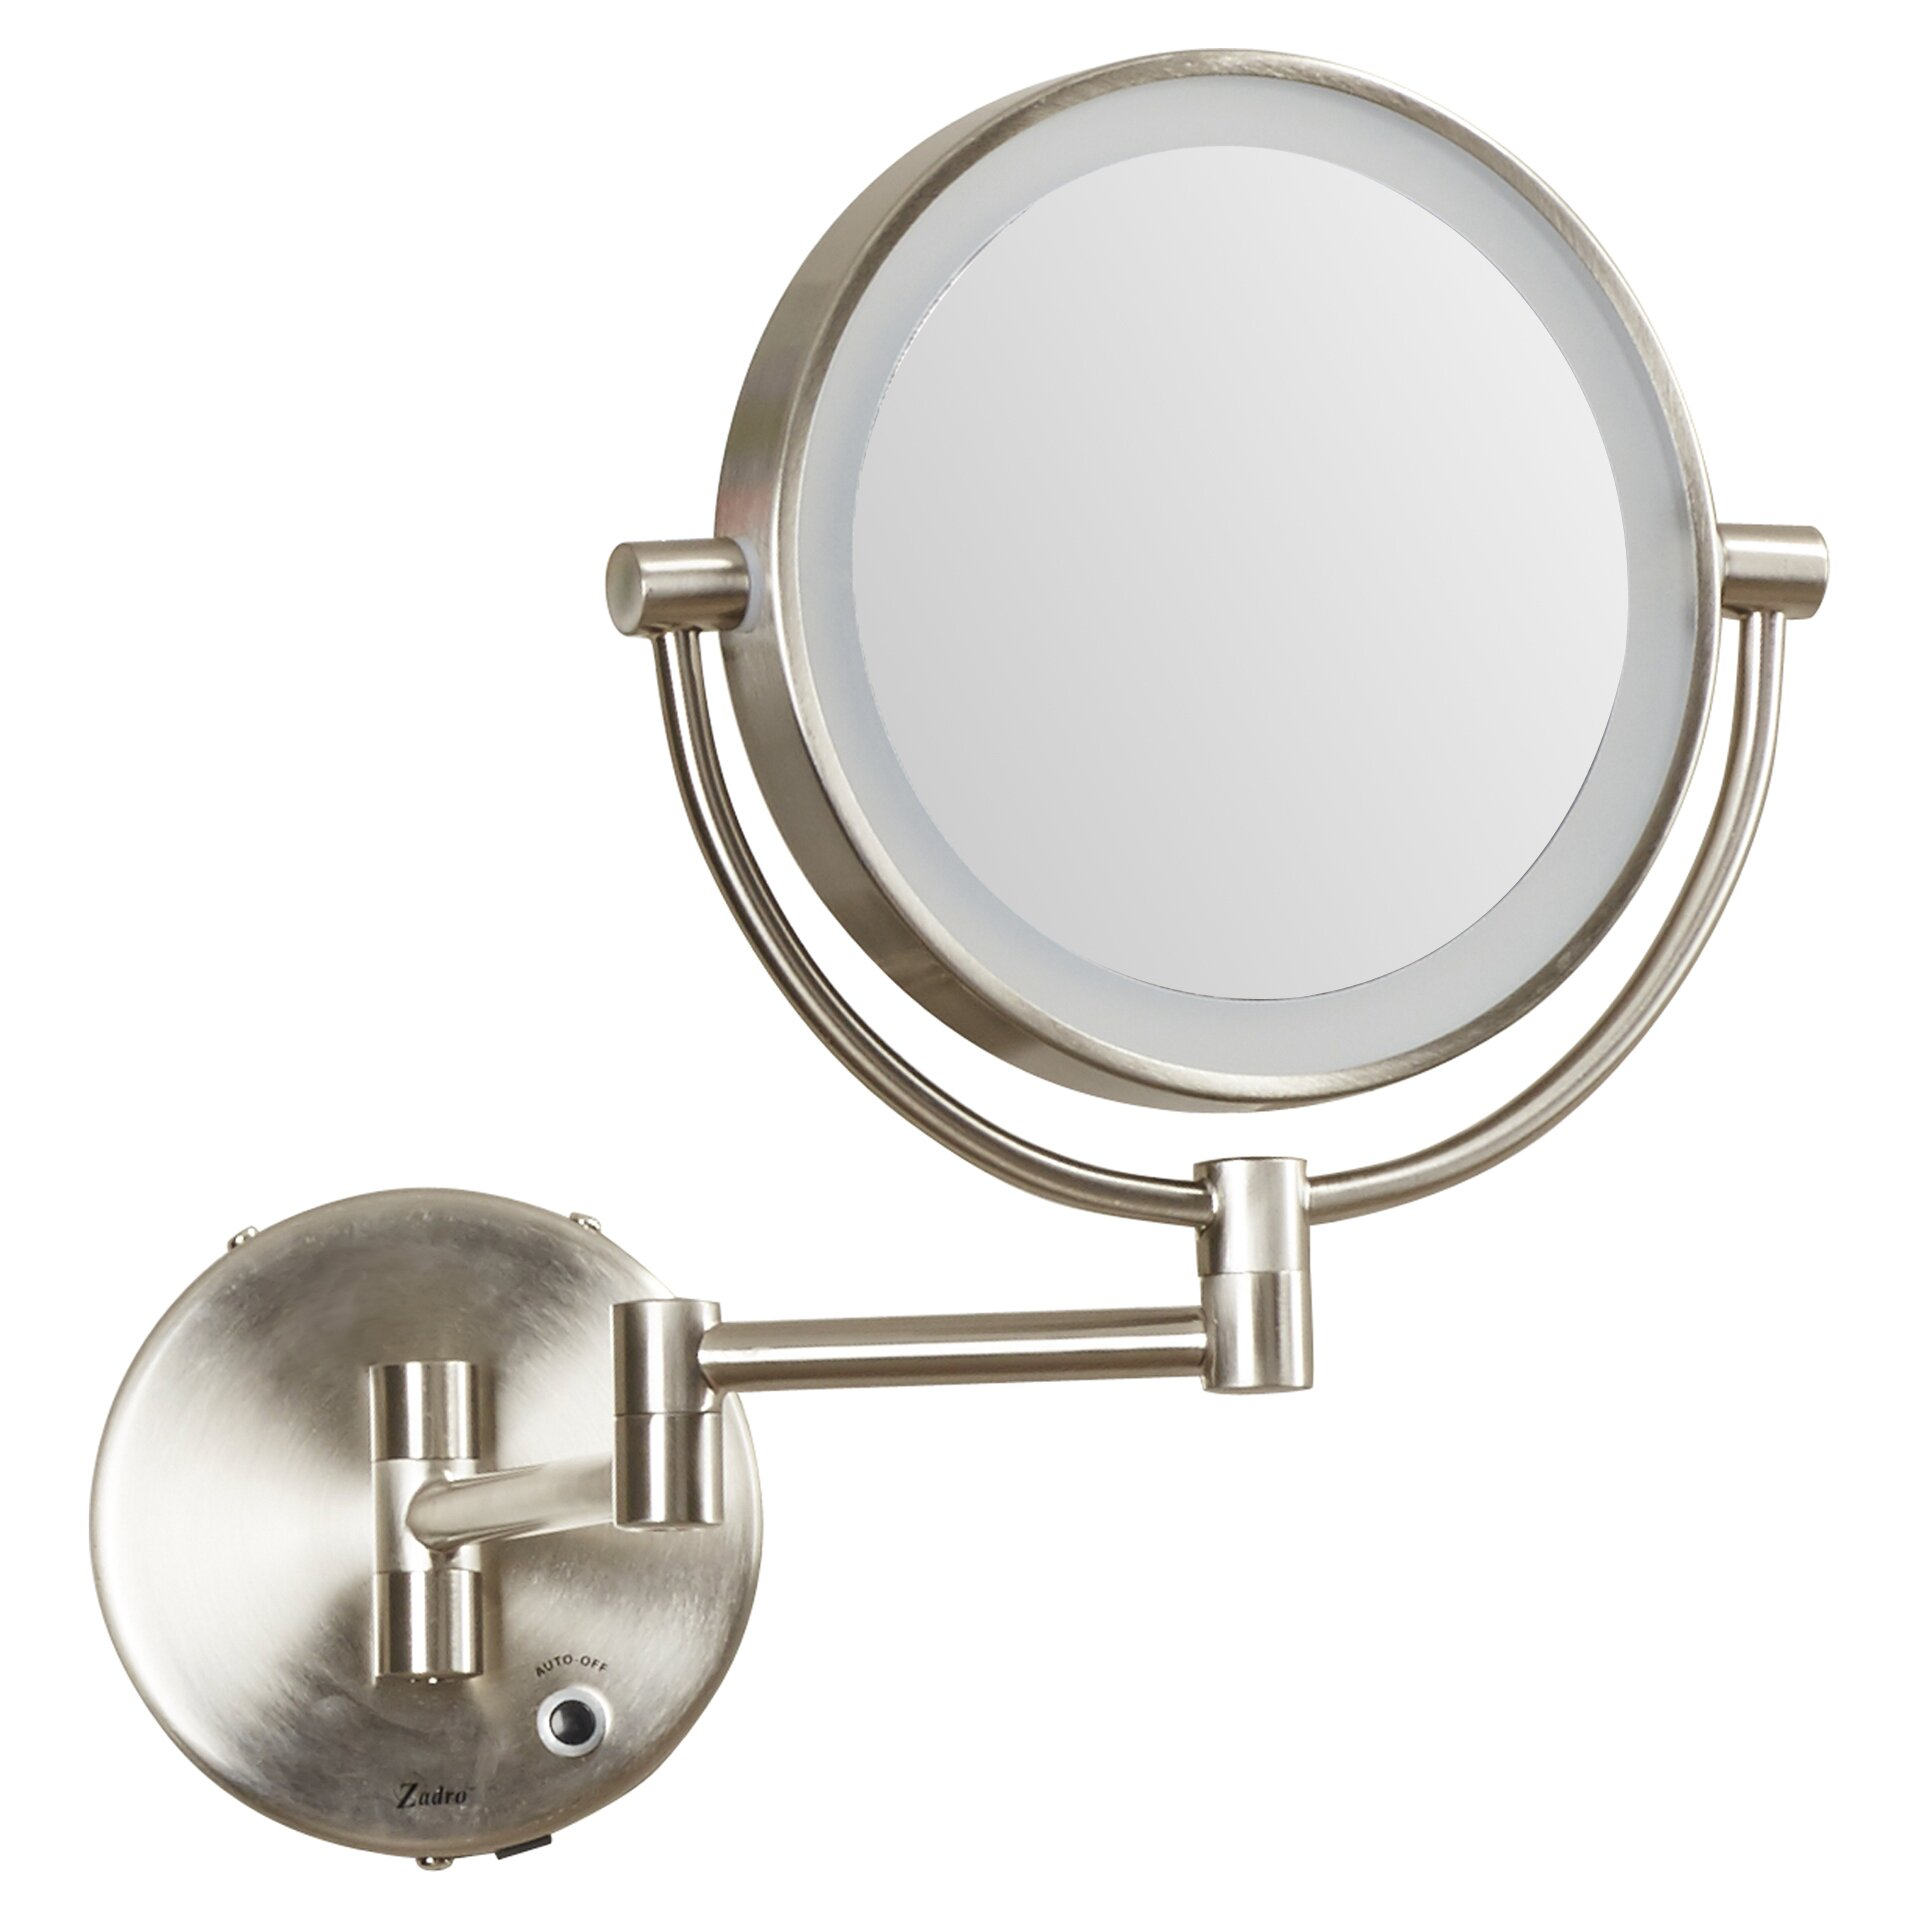 Wall mounted makeup mirror with lights - Varick Gallery Reg Howell Lighted Wall Mount Mirror